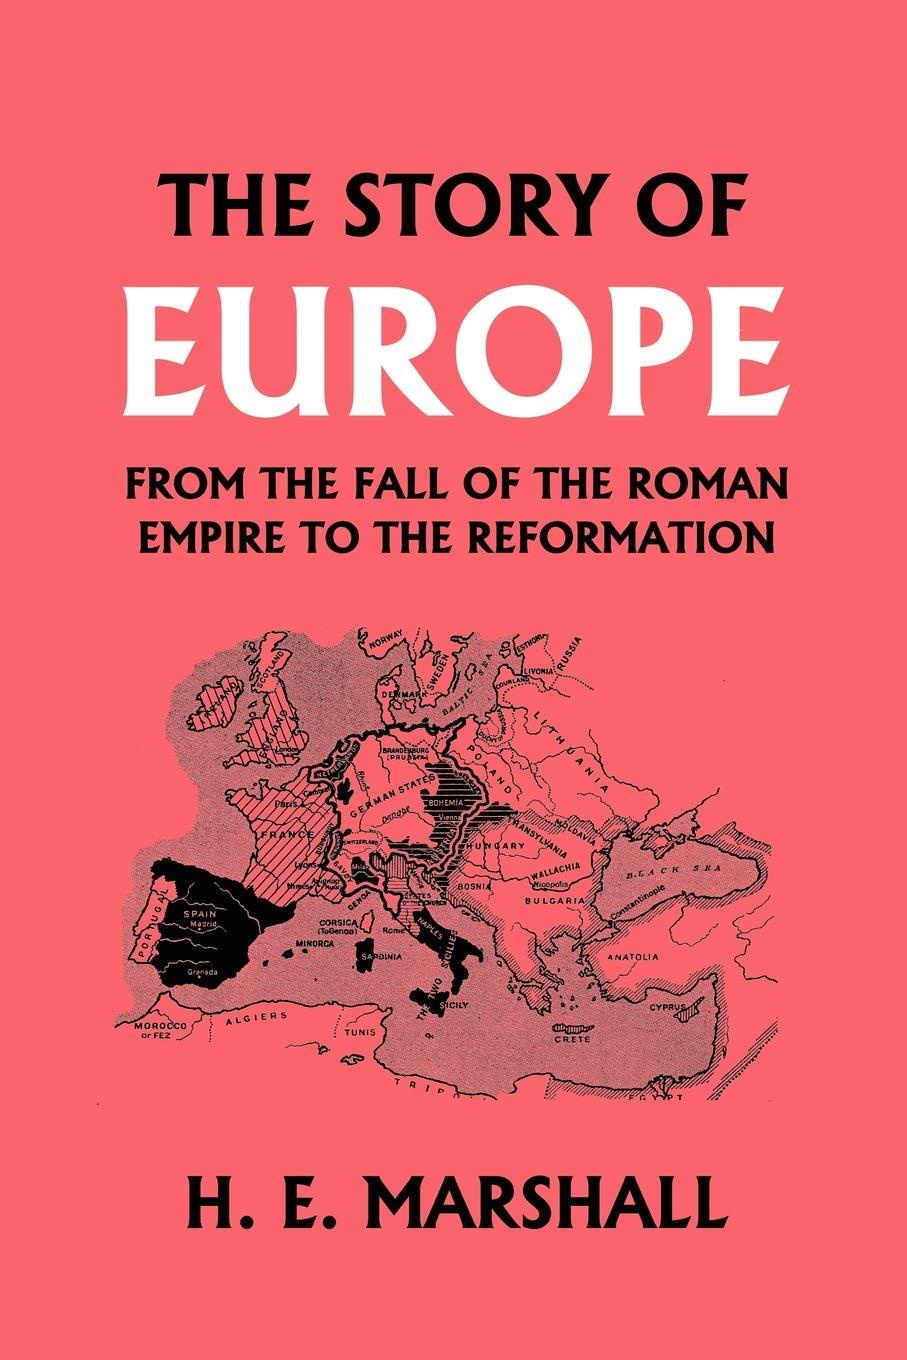 H. E. Marshall The Story of Europe from the Fall of the Roman Empire to the Reformation thomas pennington a journey into various parts of europe vol 2